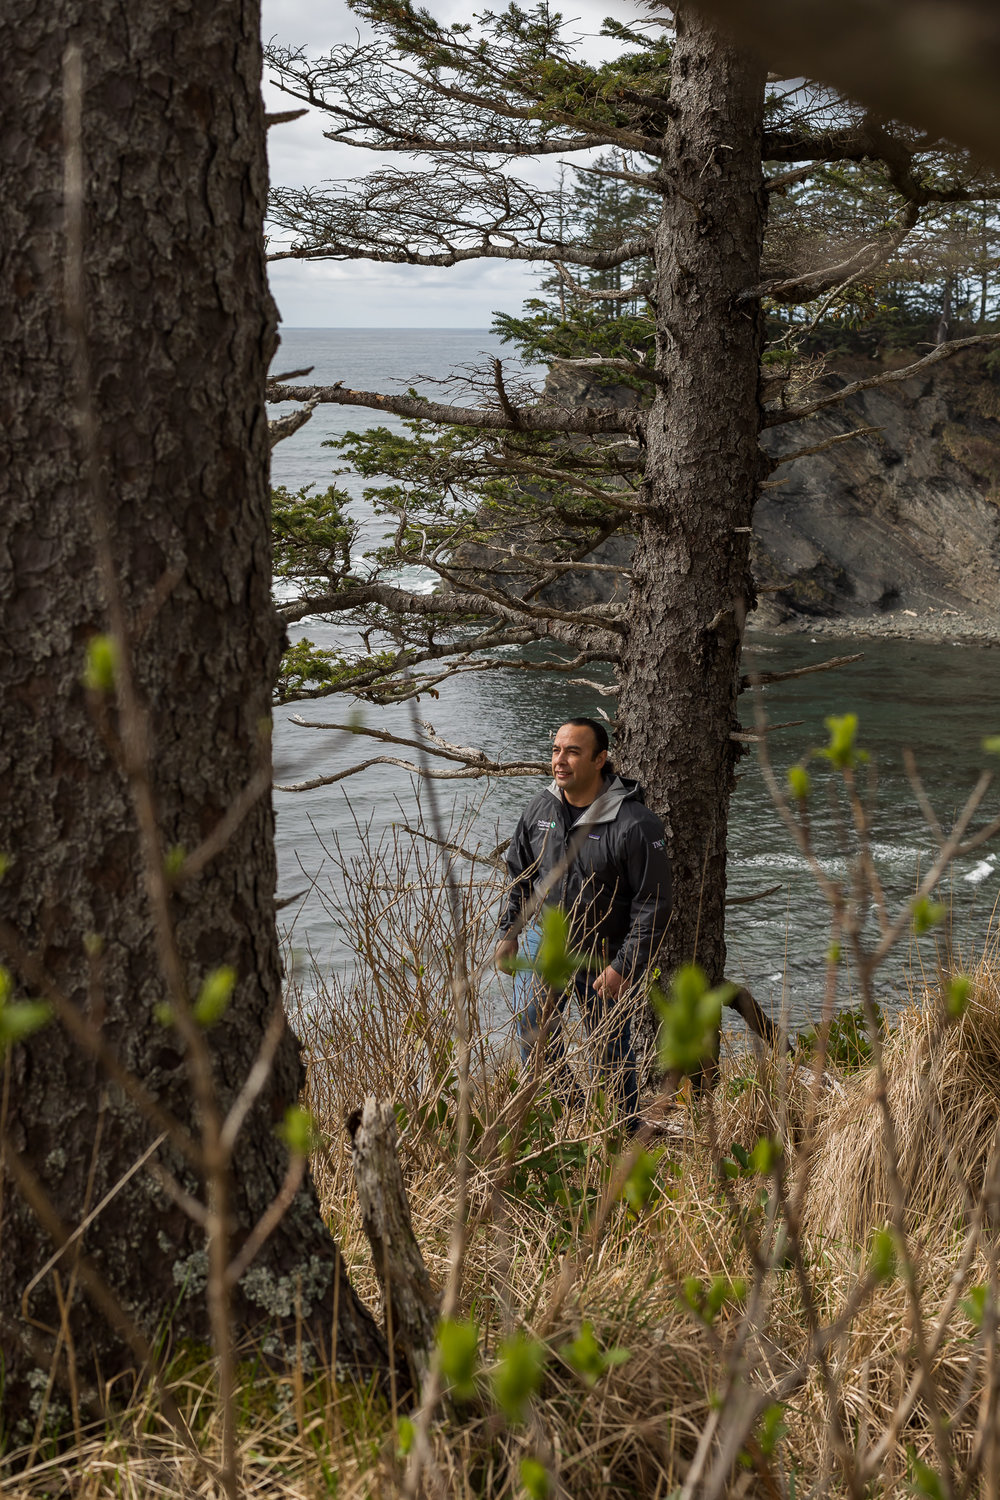 At this vantage point overlooking the Pacific Ocean at Neah Bay, TJ Greene looks toward Ozette, the southernmost historic village of the Makah Tribe. Photo by Cameron Karsten.